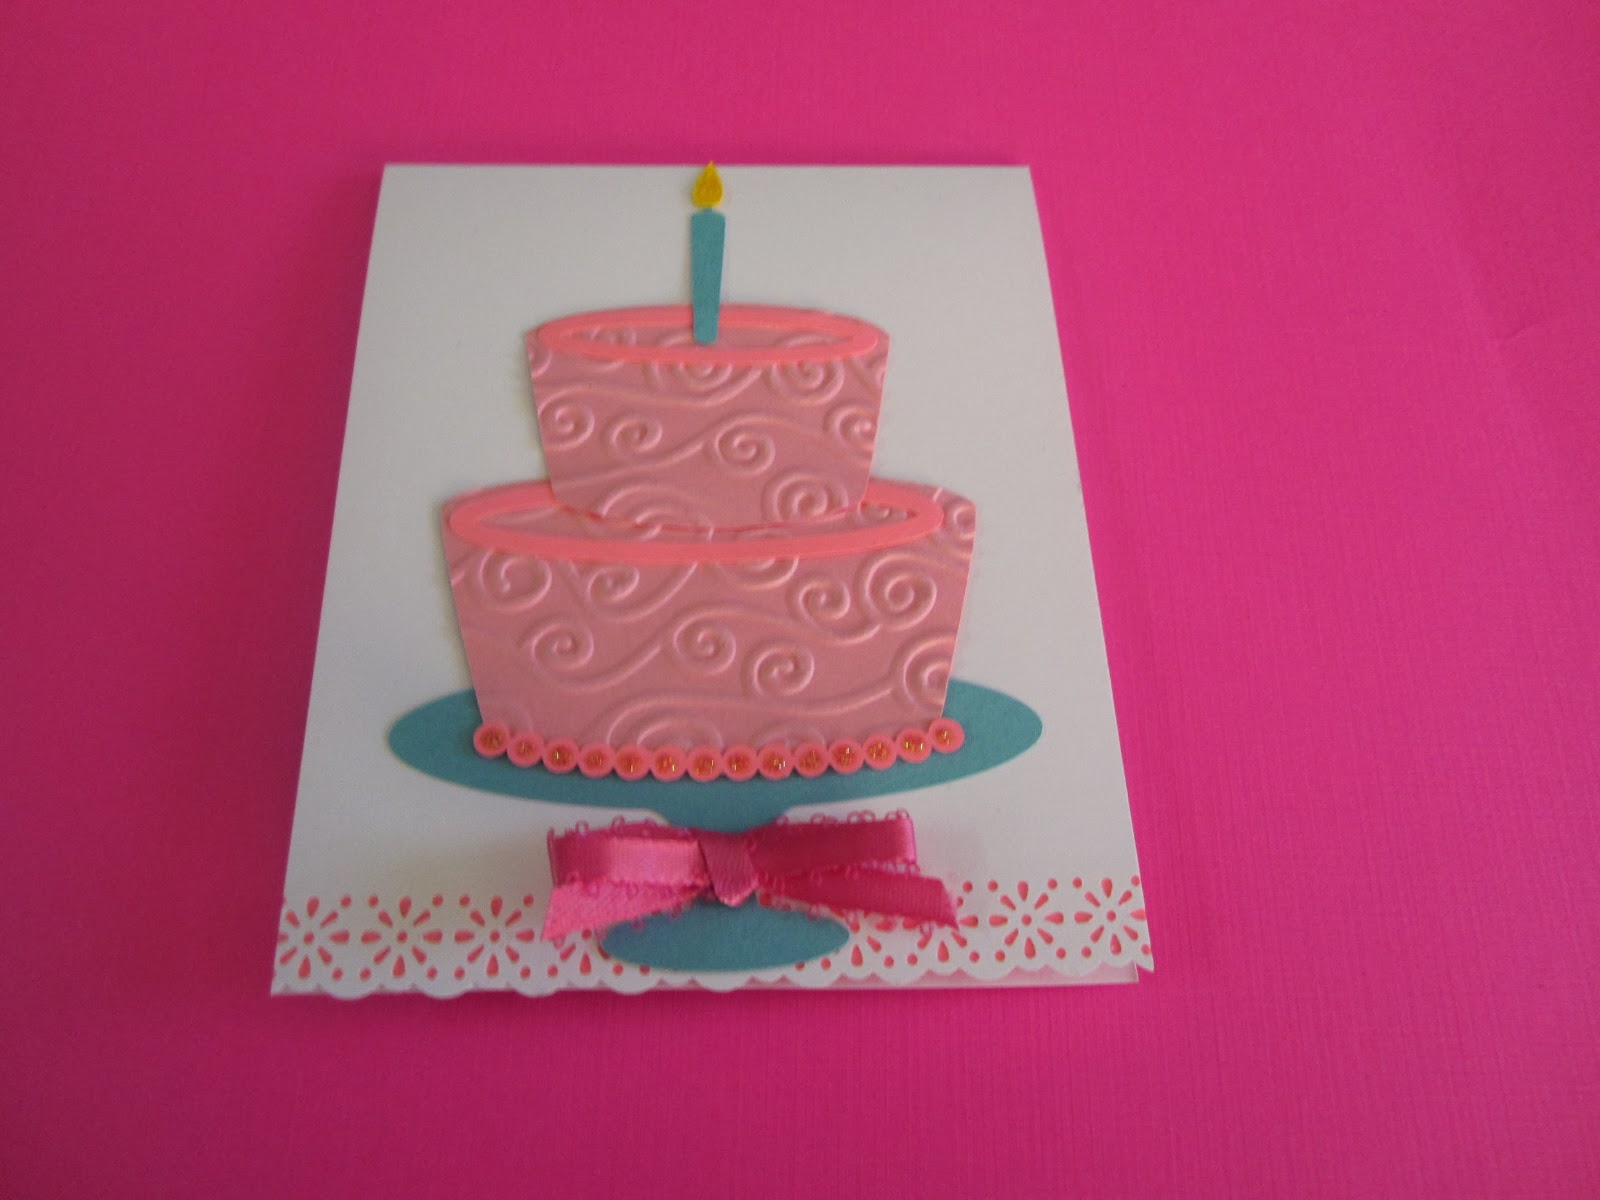 Cake Decorating Birthday Party Invitations : twocraftingmoms: Cake Decorating Birthday Party!